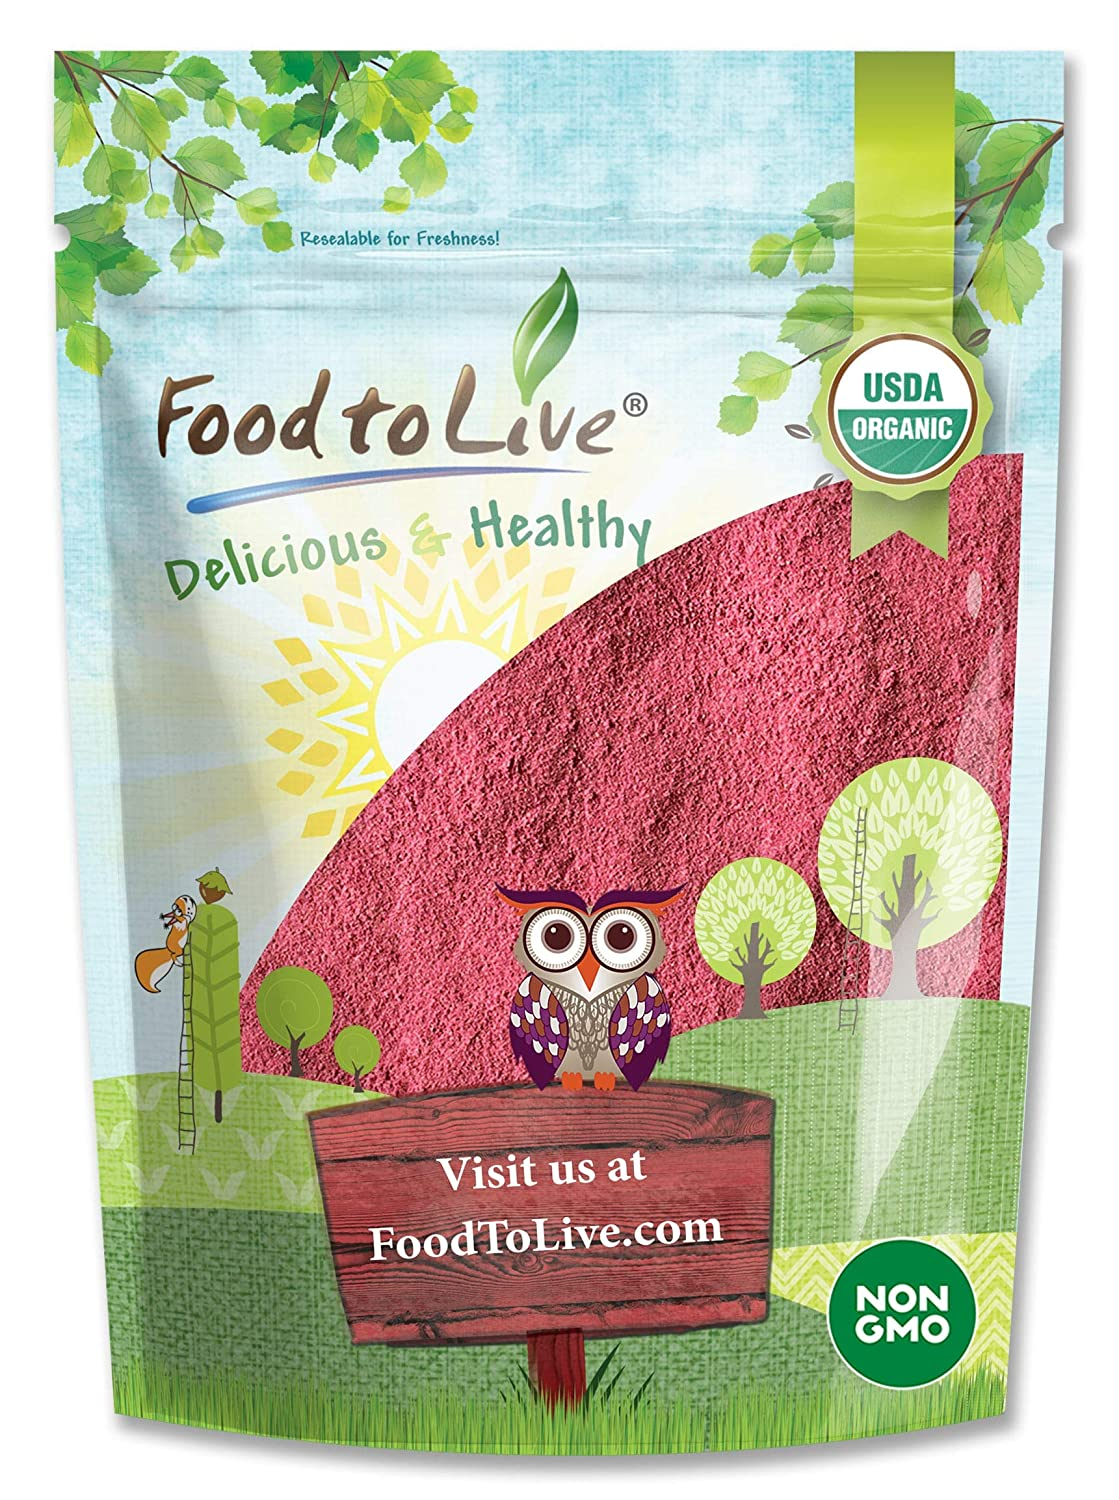 Organic Raspberry Powder, 4 Ounces - Non-GMO, Raw, Vegan Superfood, Bulk, Rich in Essential Amino Acids, Fatty Acids, and Minerals, Great for Juices, Drinks, and Smoothies.